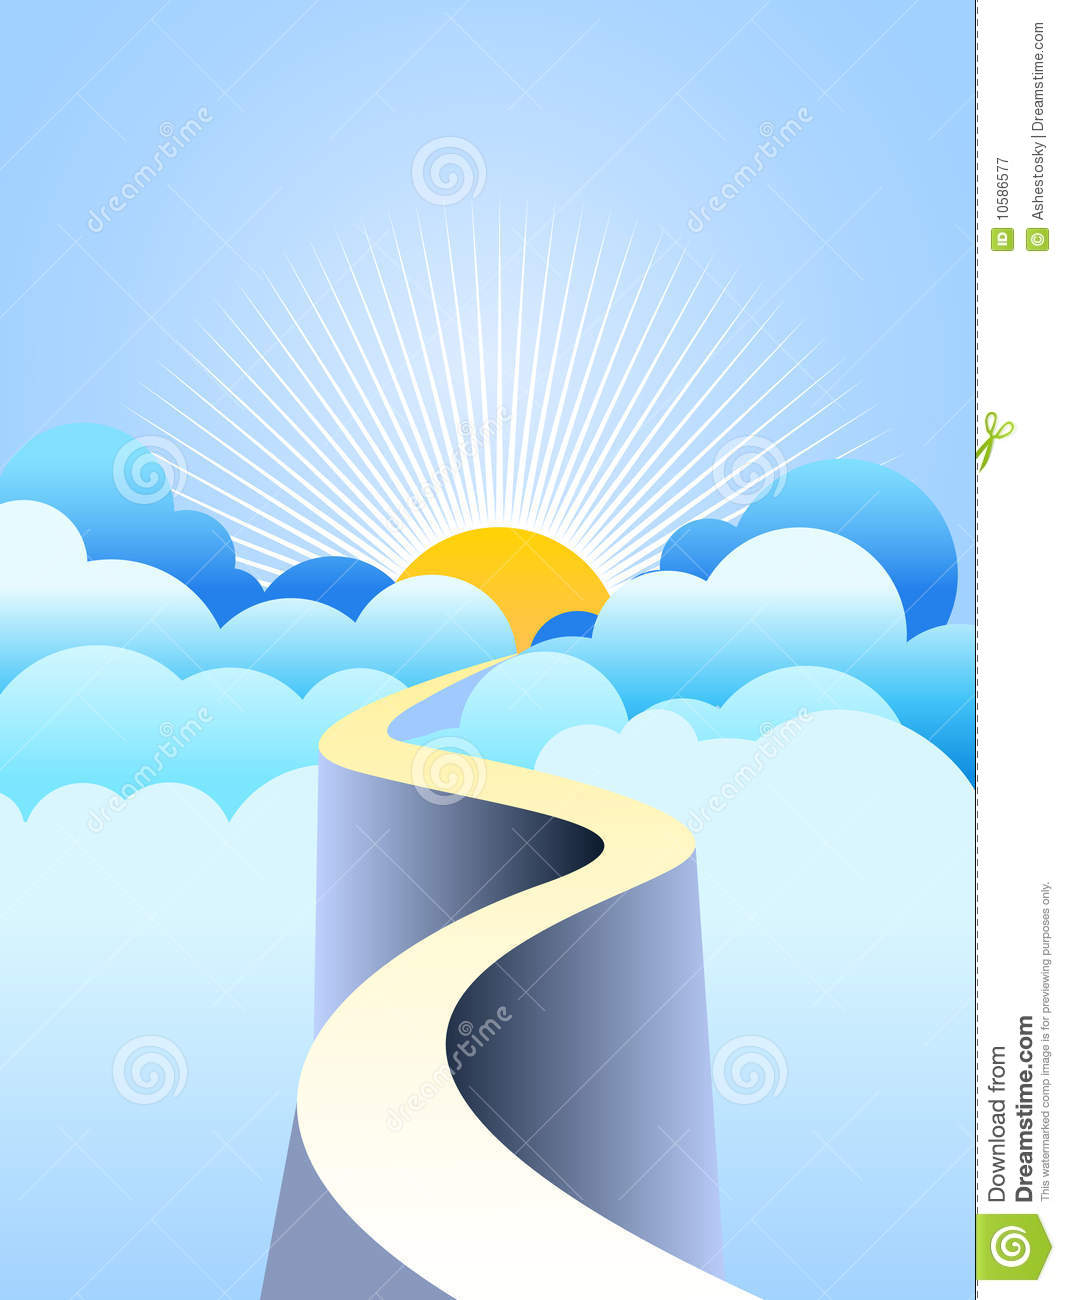 Heaven clipart 5 » Clipart Station.